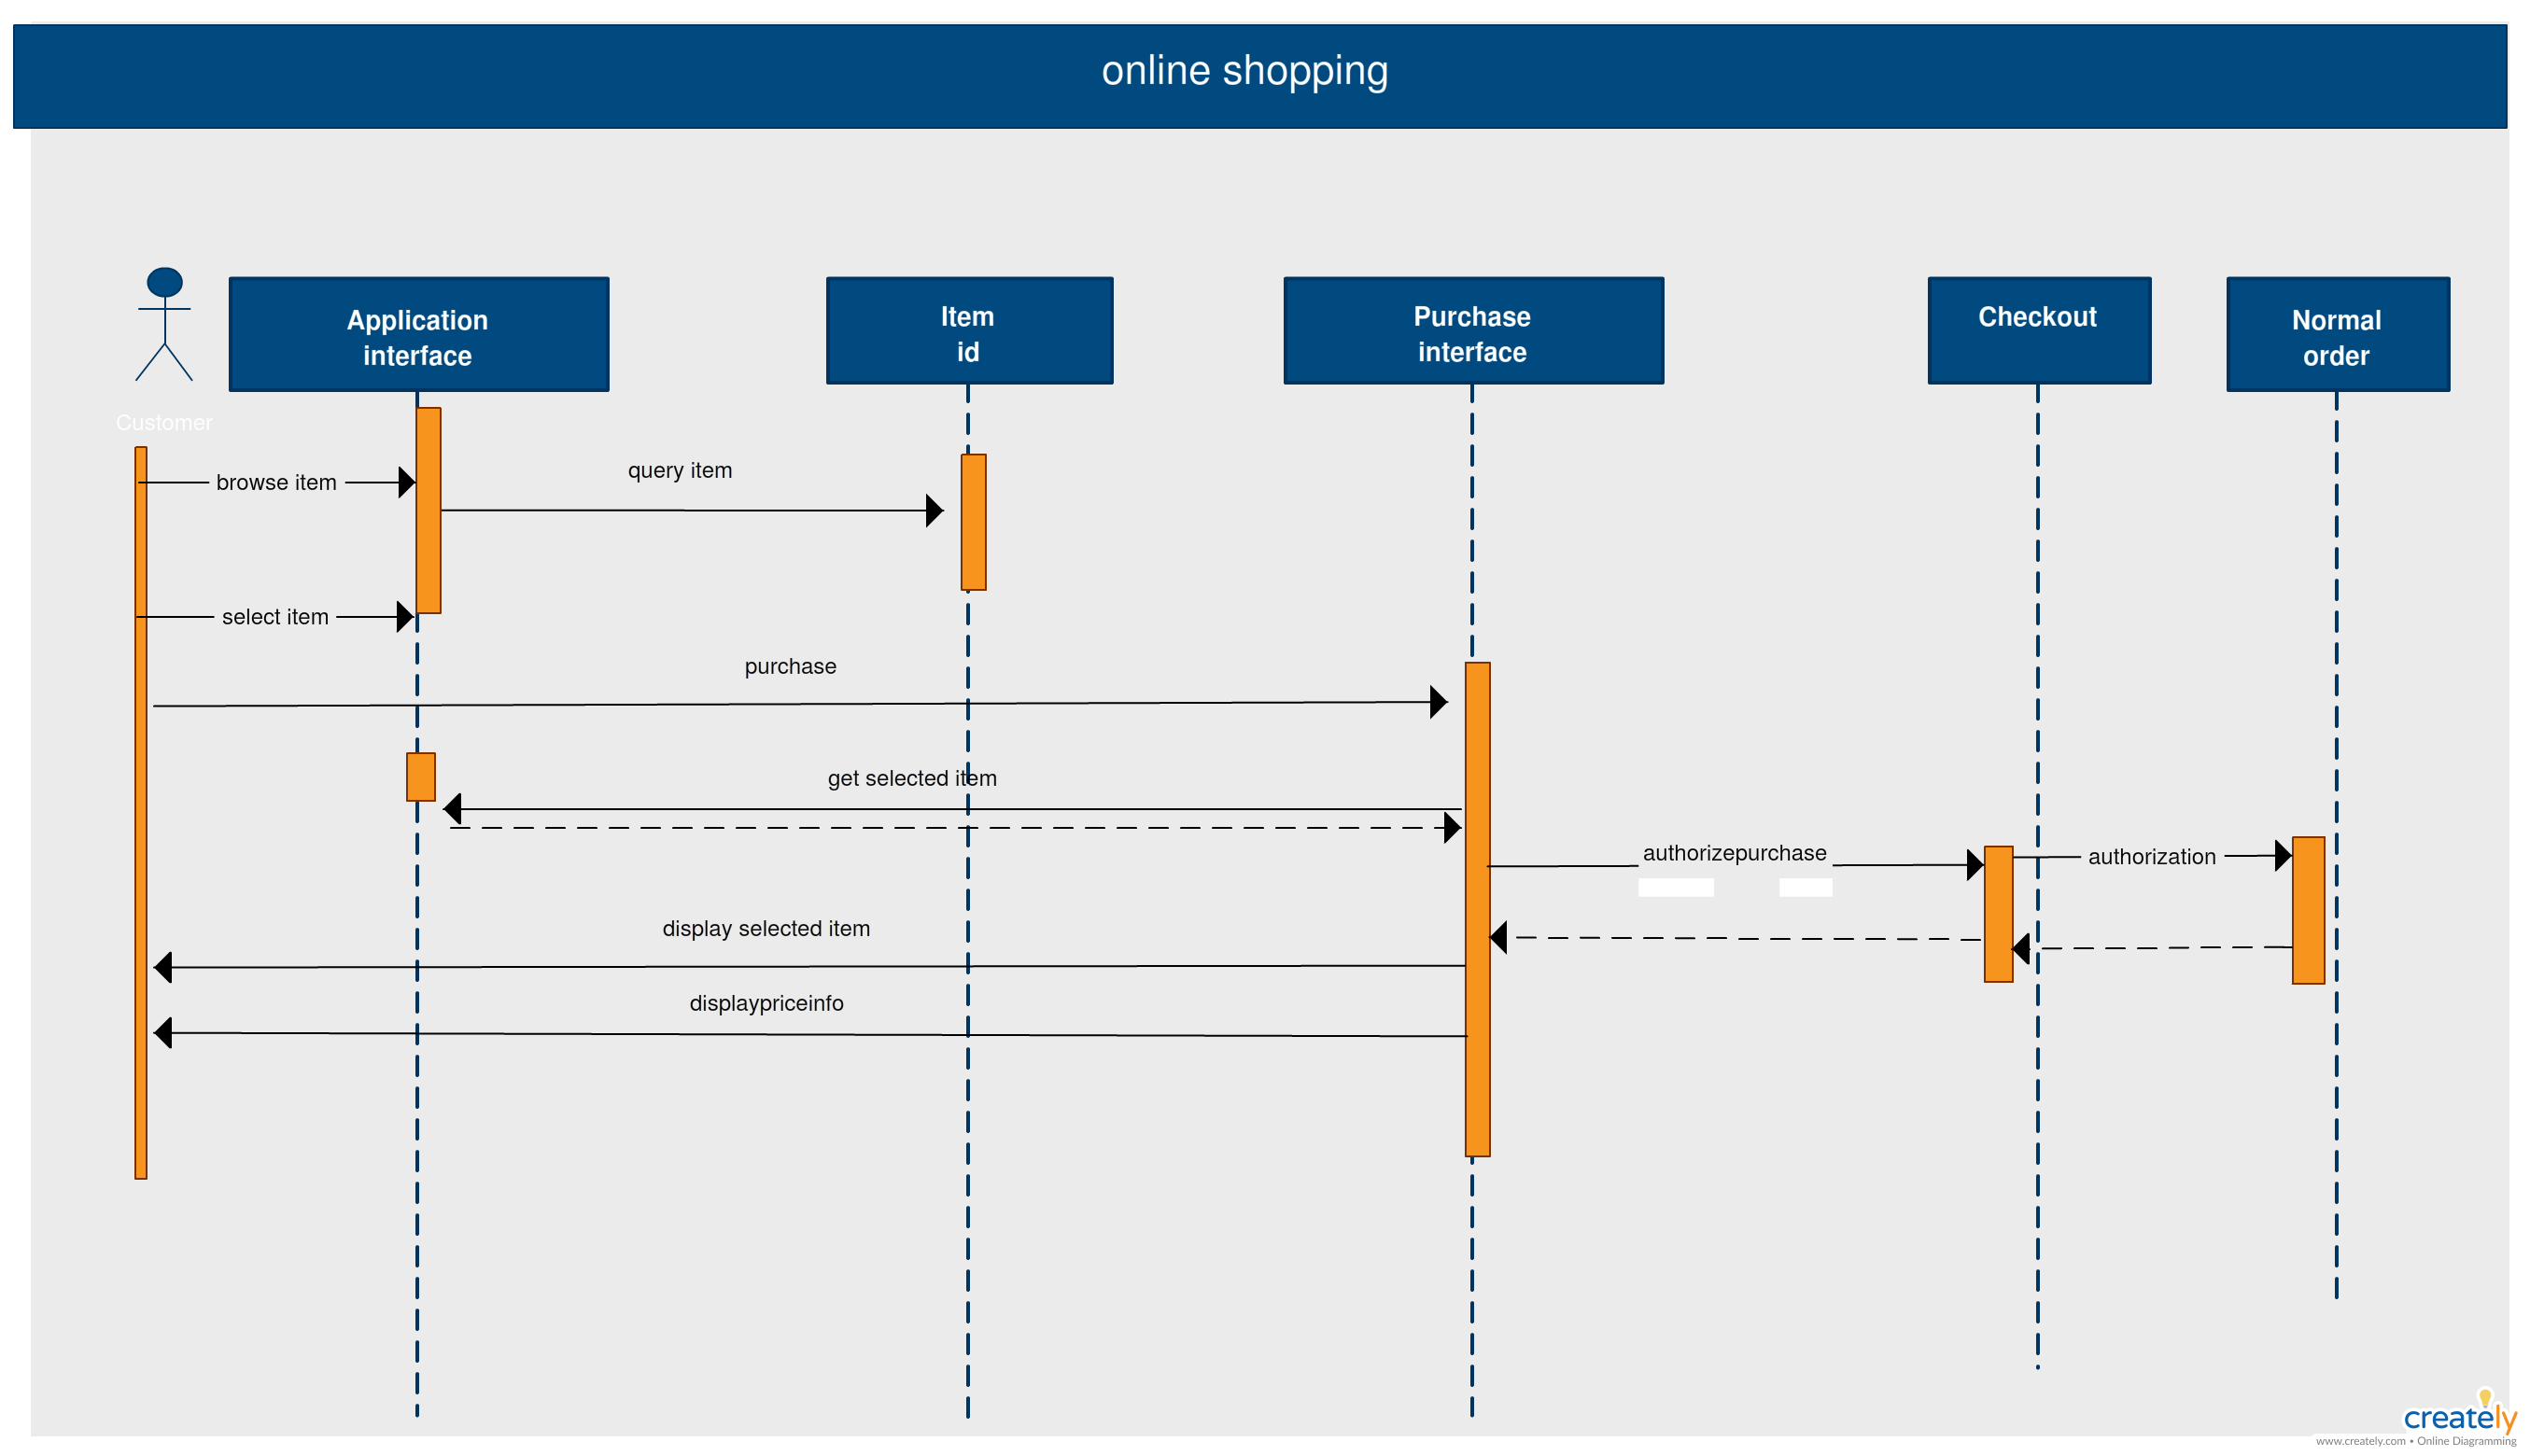 medium resolution of sequence diagram template of online shopping system click on the image to use this as